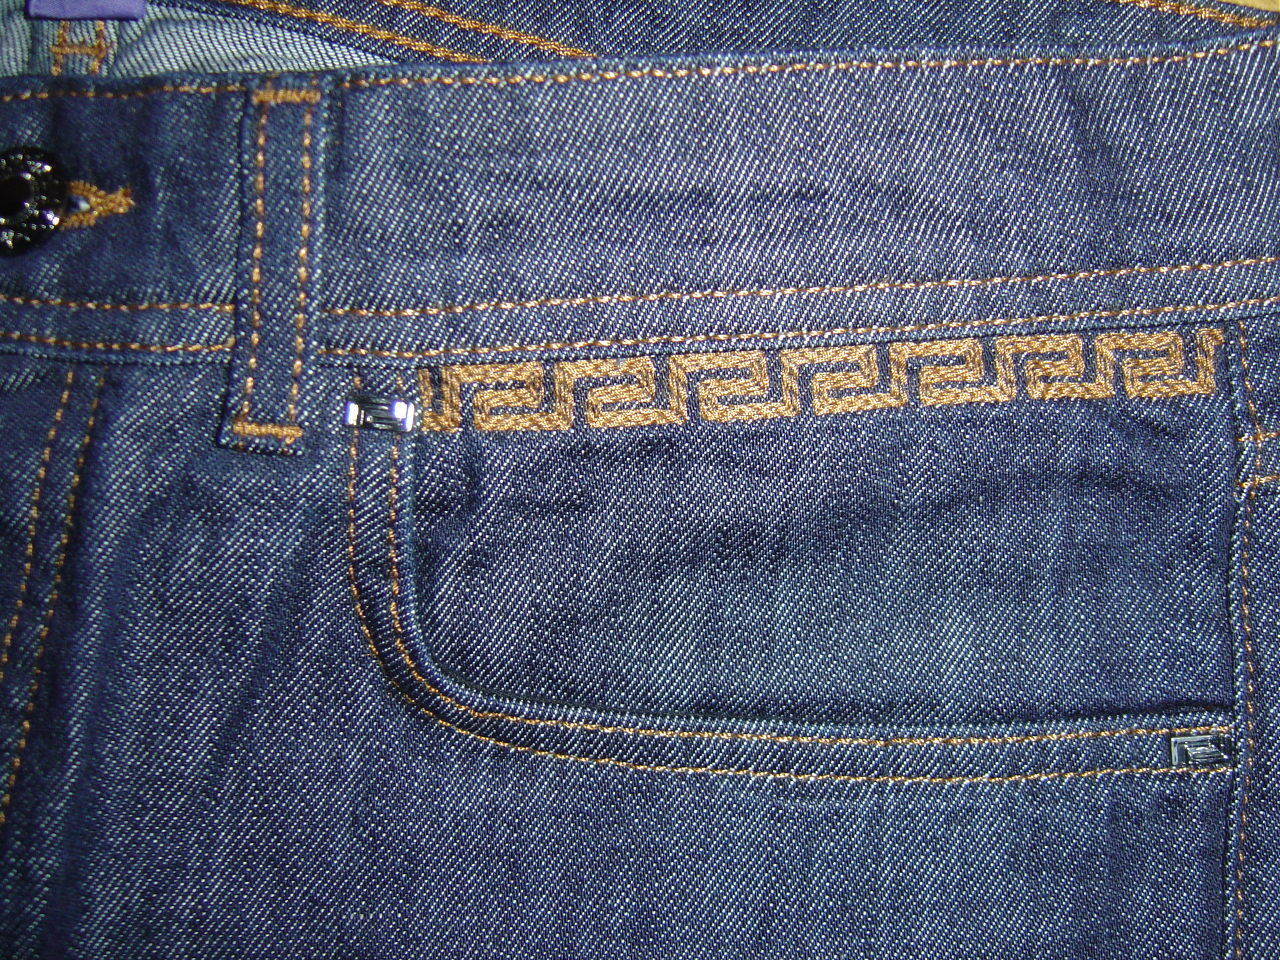 VERSACE for h&m JEANS Cruise collection Pants Pantaloni Pantaloni Pantaloni Dimensione Dimensione w34 NUOVO NEW ef3c18